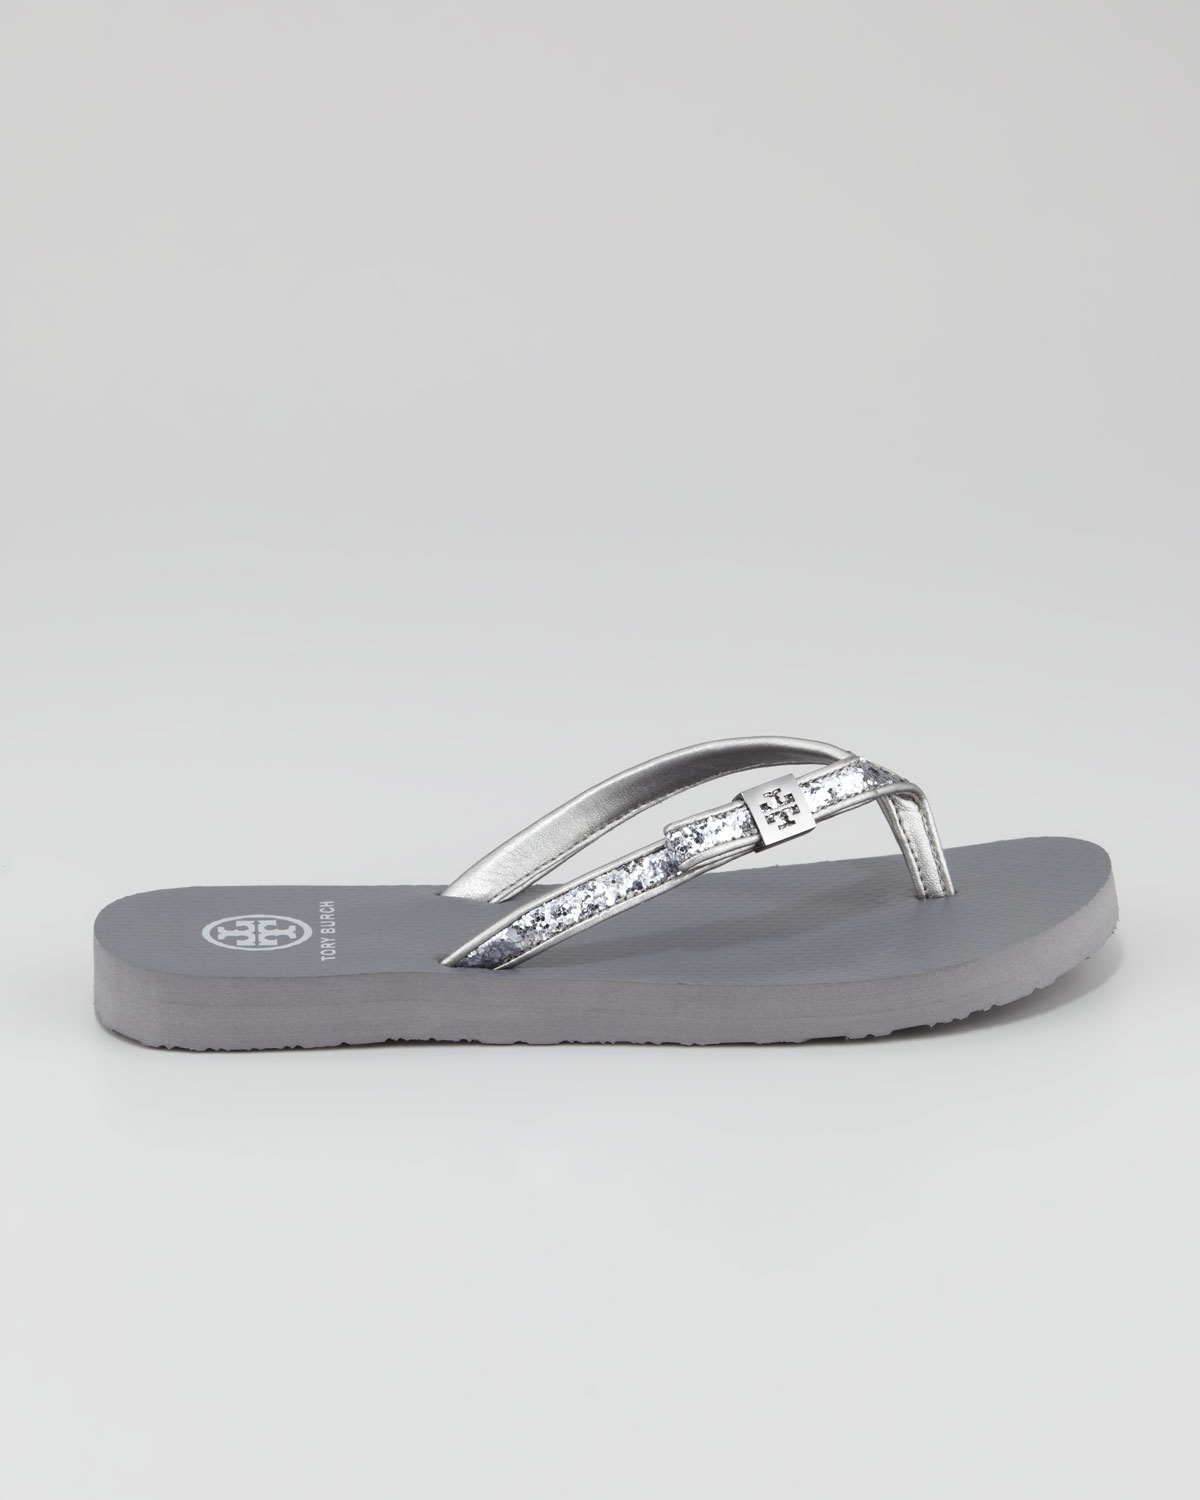 27a221cc4 Lyst - Tory Burch Carey Glitter Flipflop Pewter in Gray